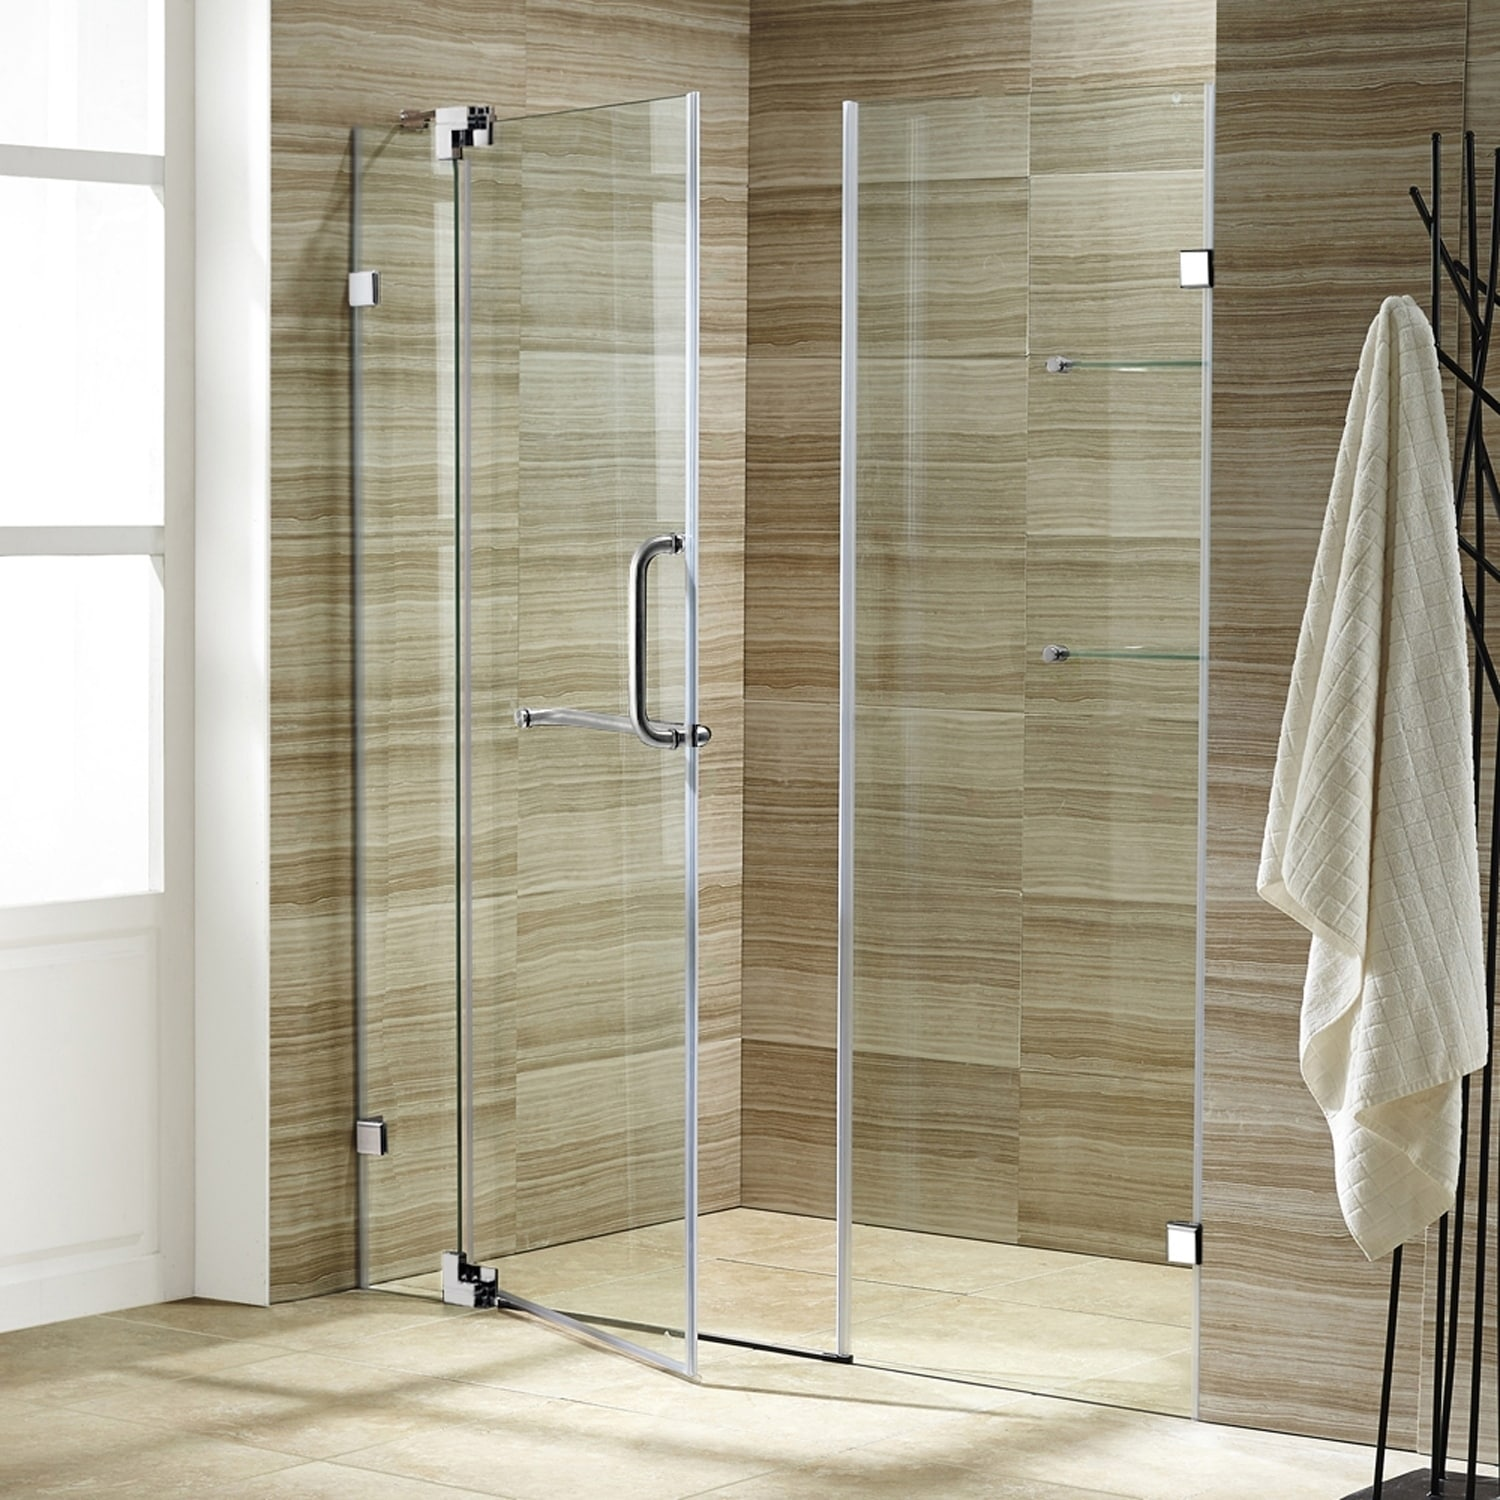 Shop Vigo Pirouette 48 Inch Pivot Shower Door Clearchrome Free